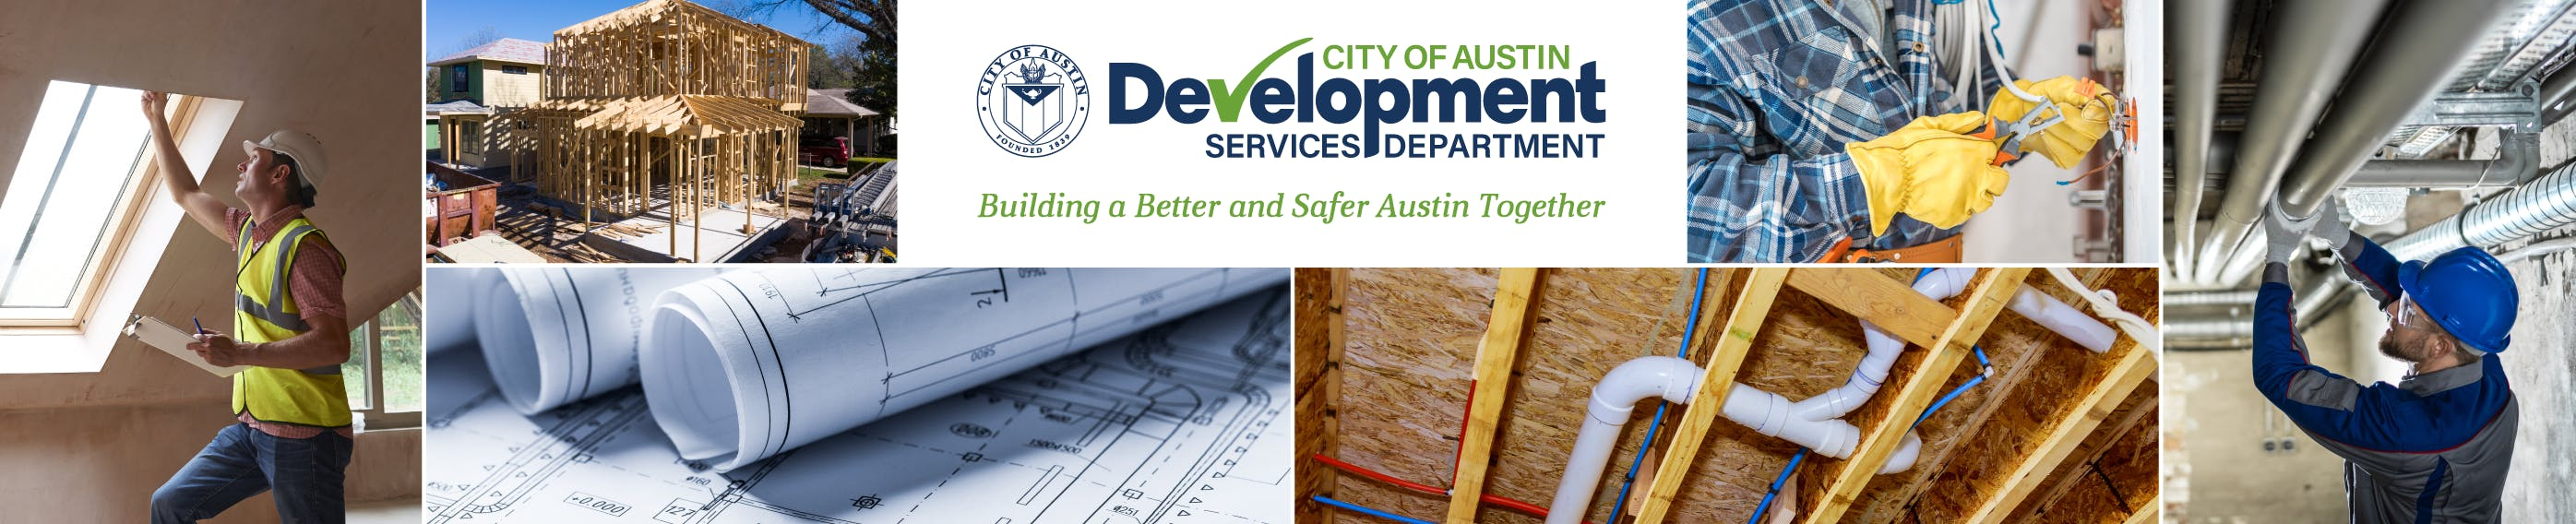 Hero image with construction of buildings, building plans, inspectors, and inspections